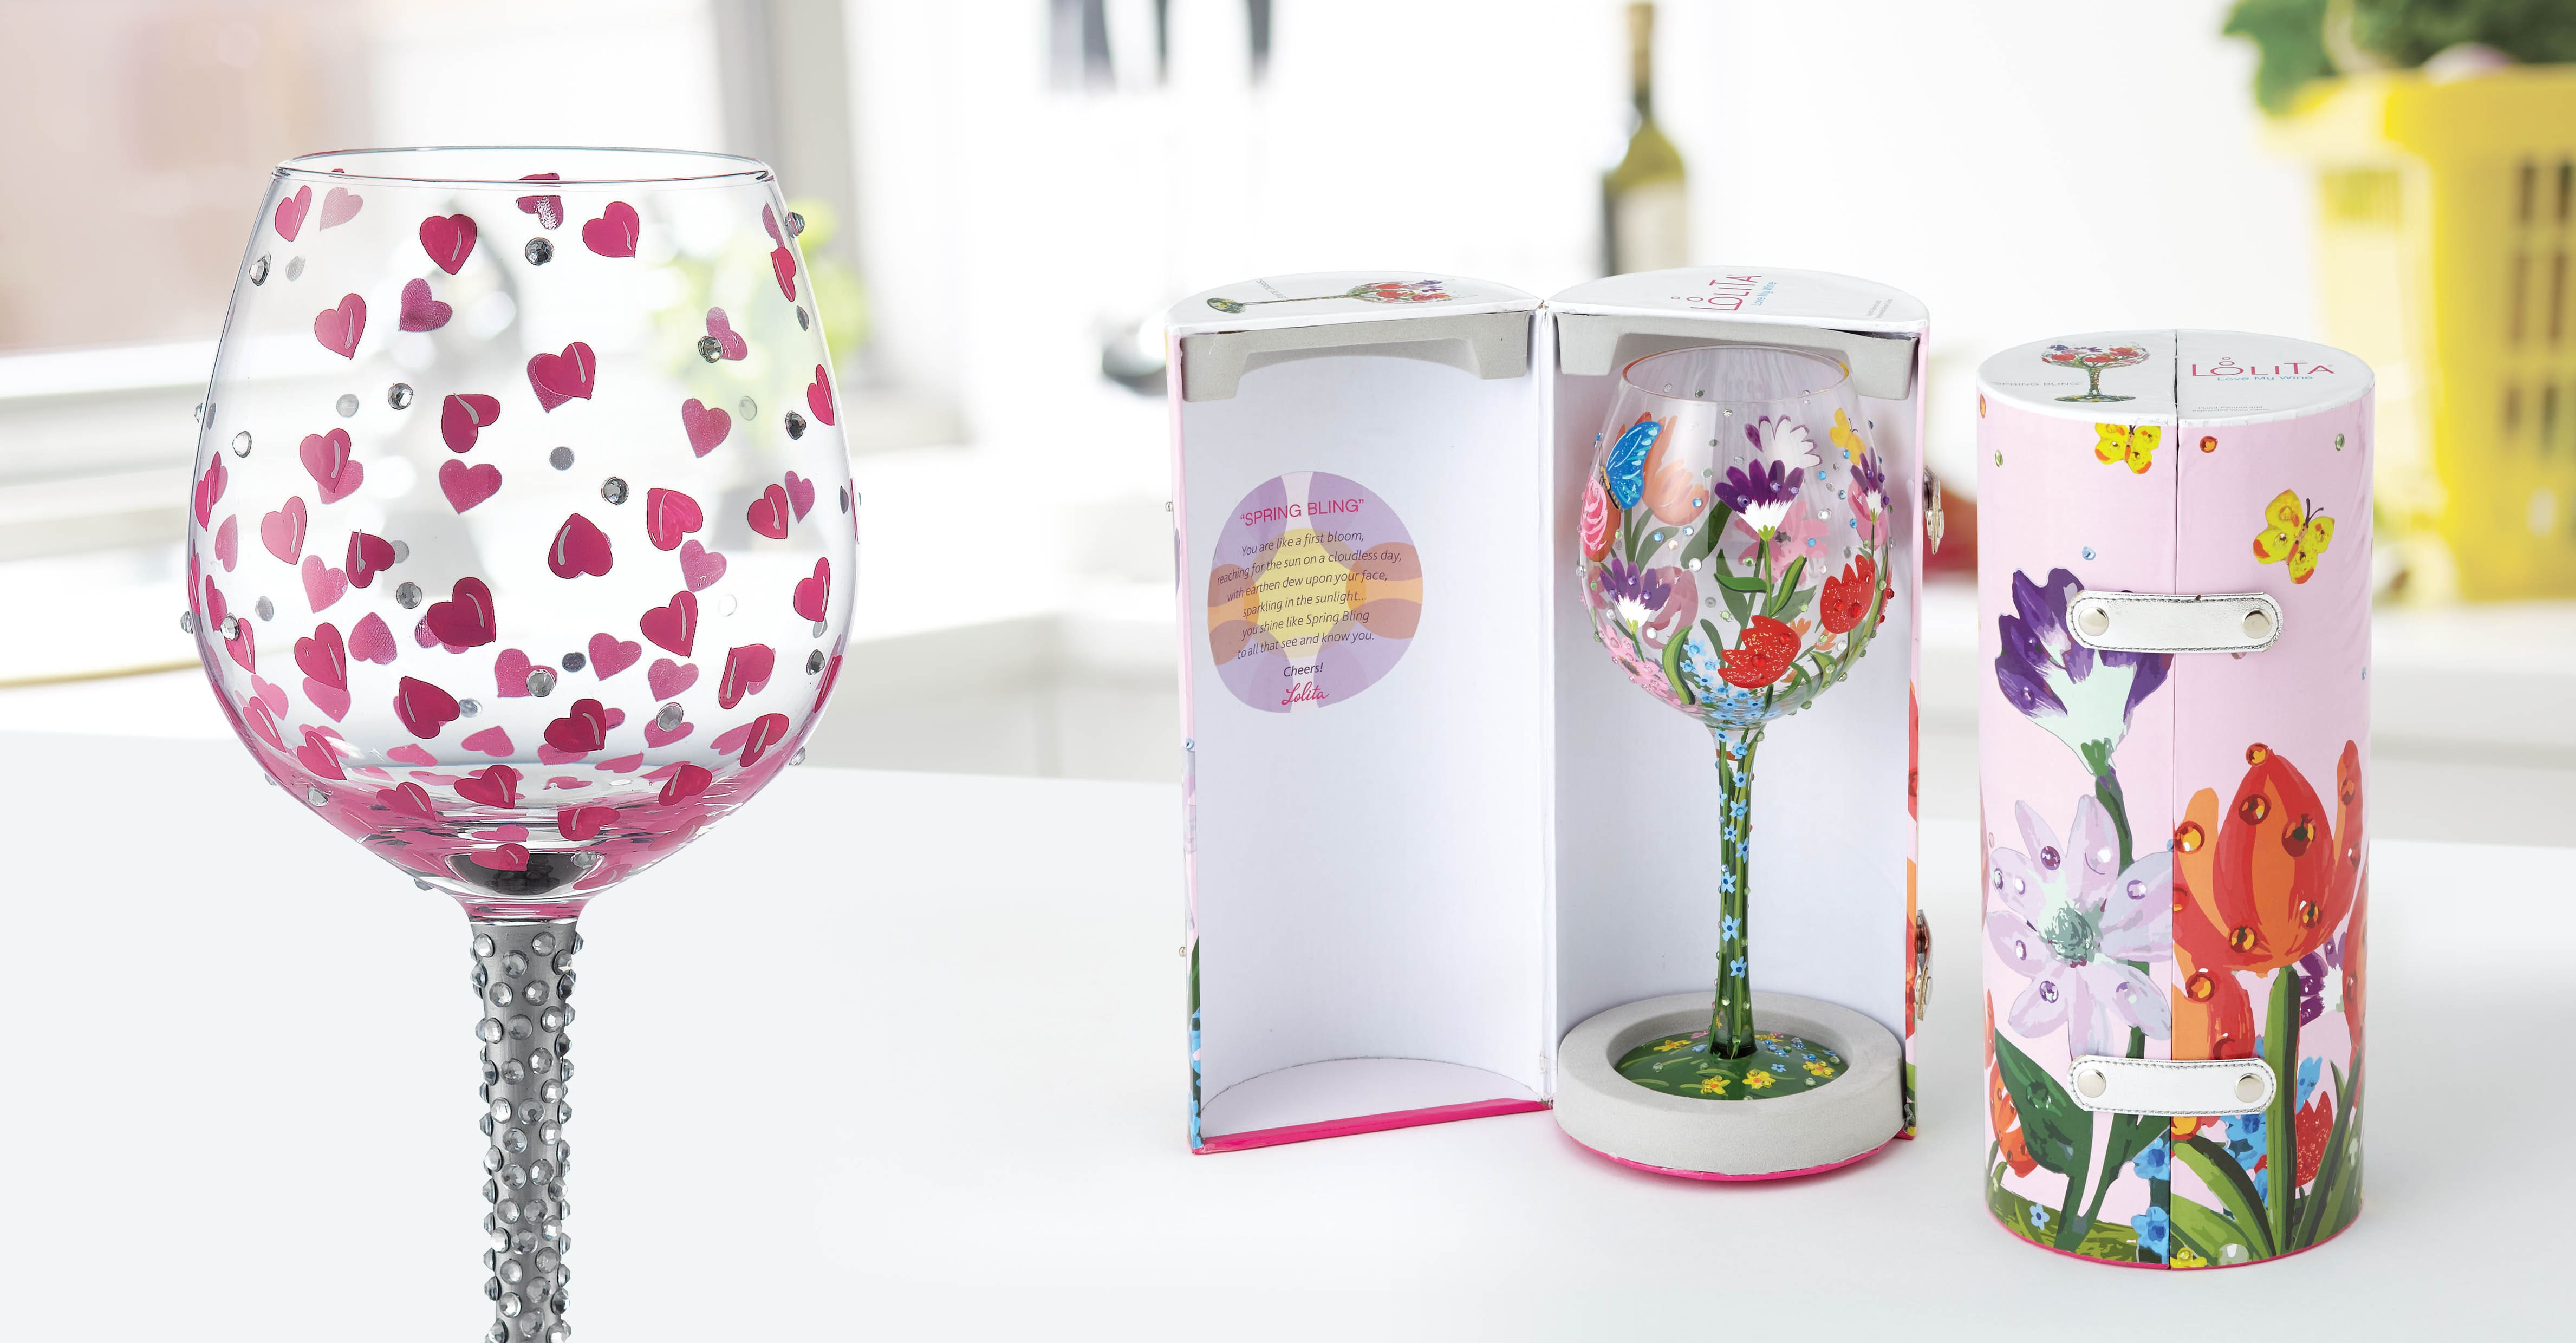 Lolita Superbling Extra Large Wine Glasses